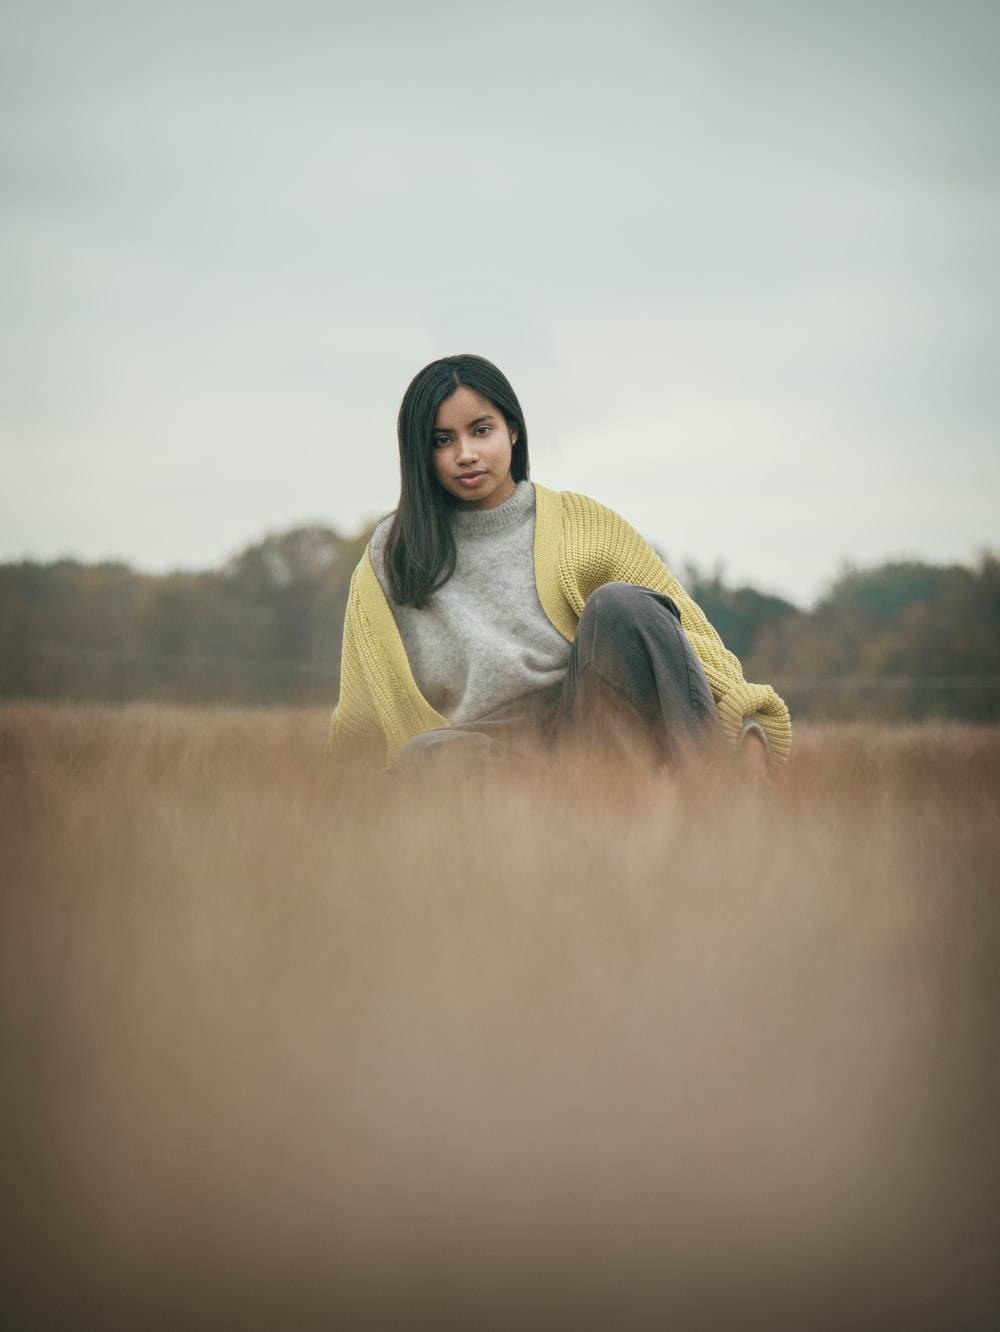 woman in yellow hijab standing on green grass field during daytime